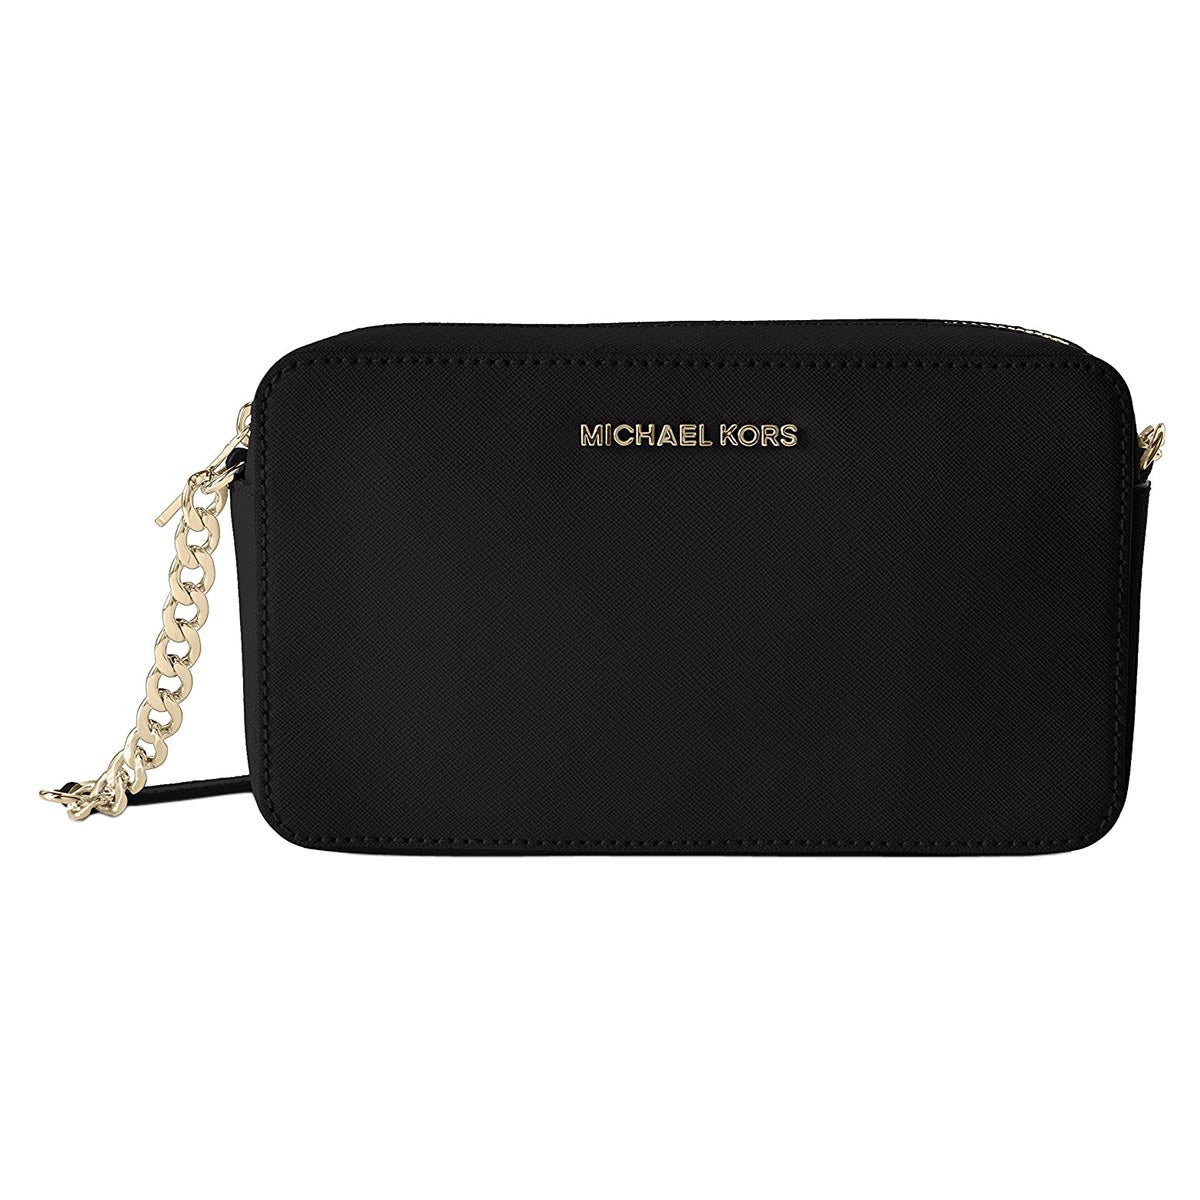 Michael Kors 32T6GTVC6L-001 Women's Jet Set Travel Black Saffiano Leather Crossbody Shoulder Bag